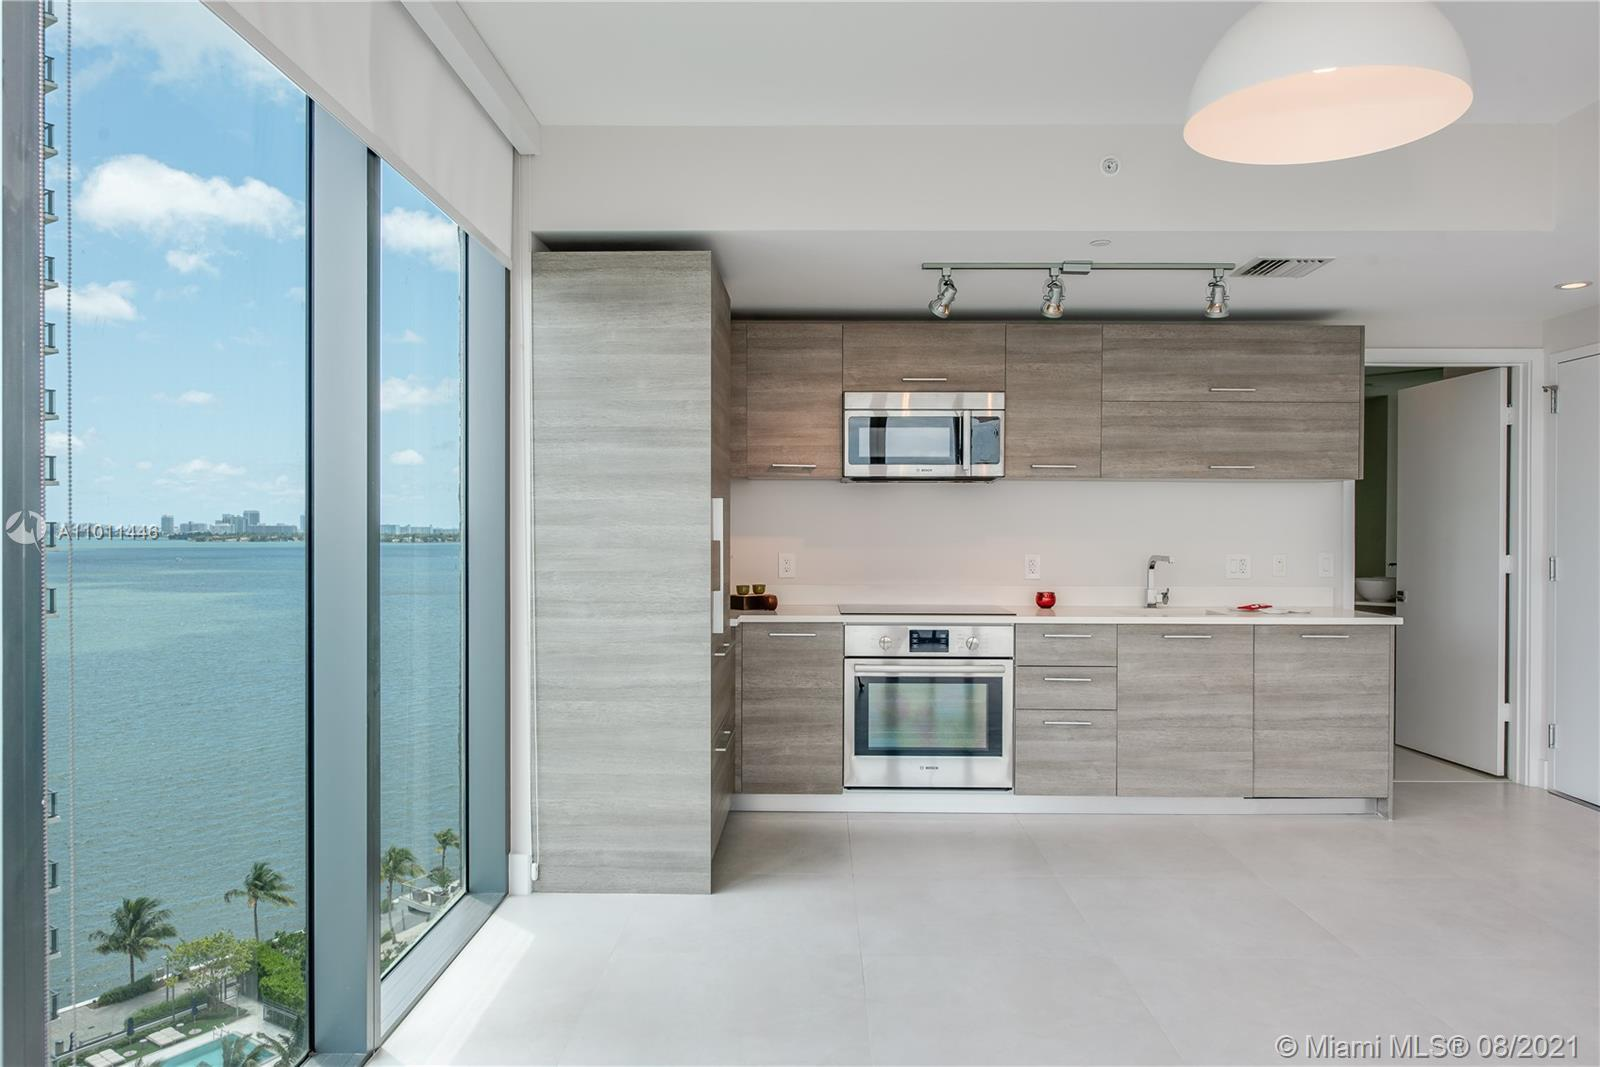 *PLEASE 48 HRS ADV. NOTICE*PARAISO BAY IN EDGEWATER OVERSIZED SF 706-1 BR + 1 1/2 BA W/WATER VIEW* E